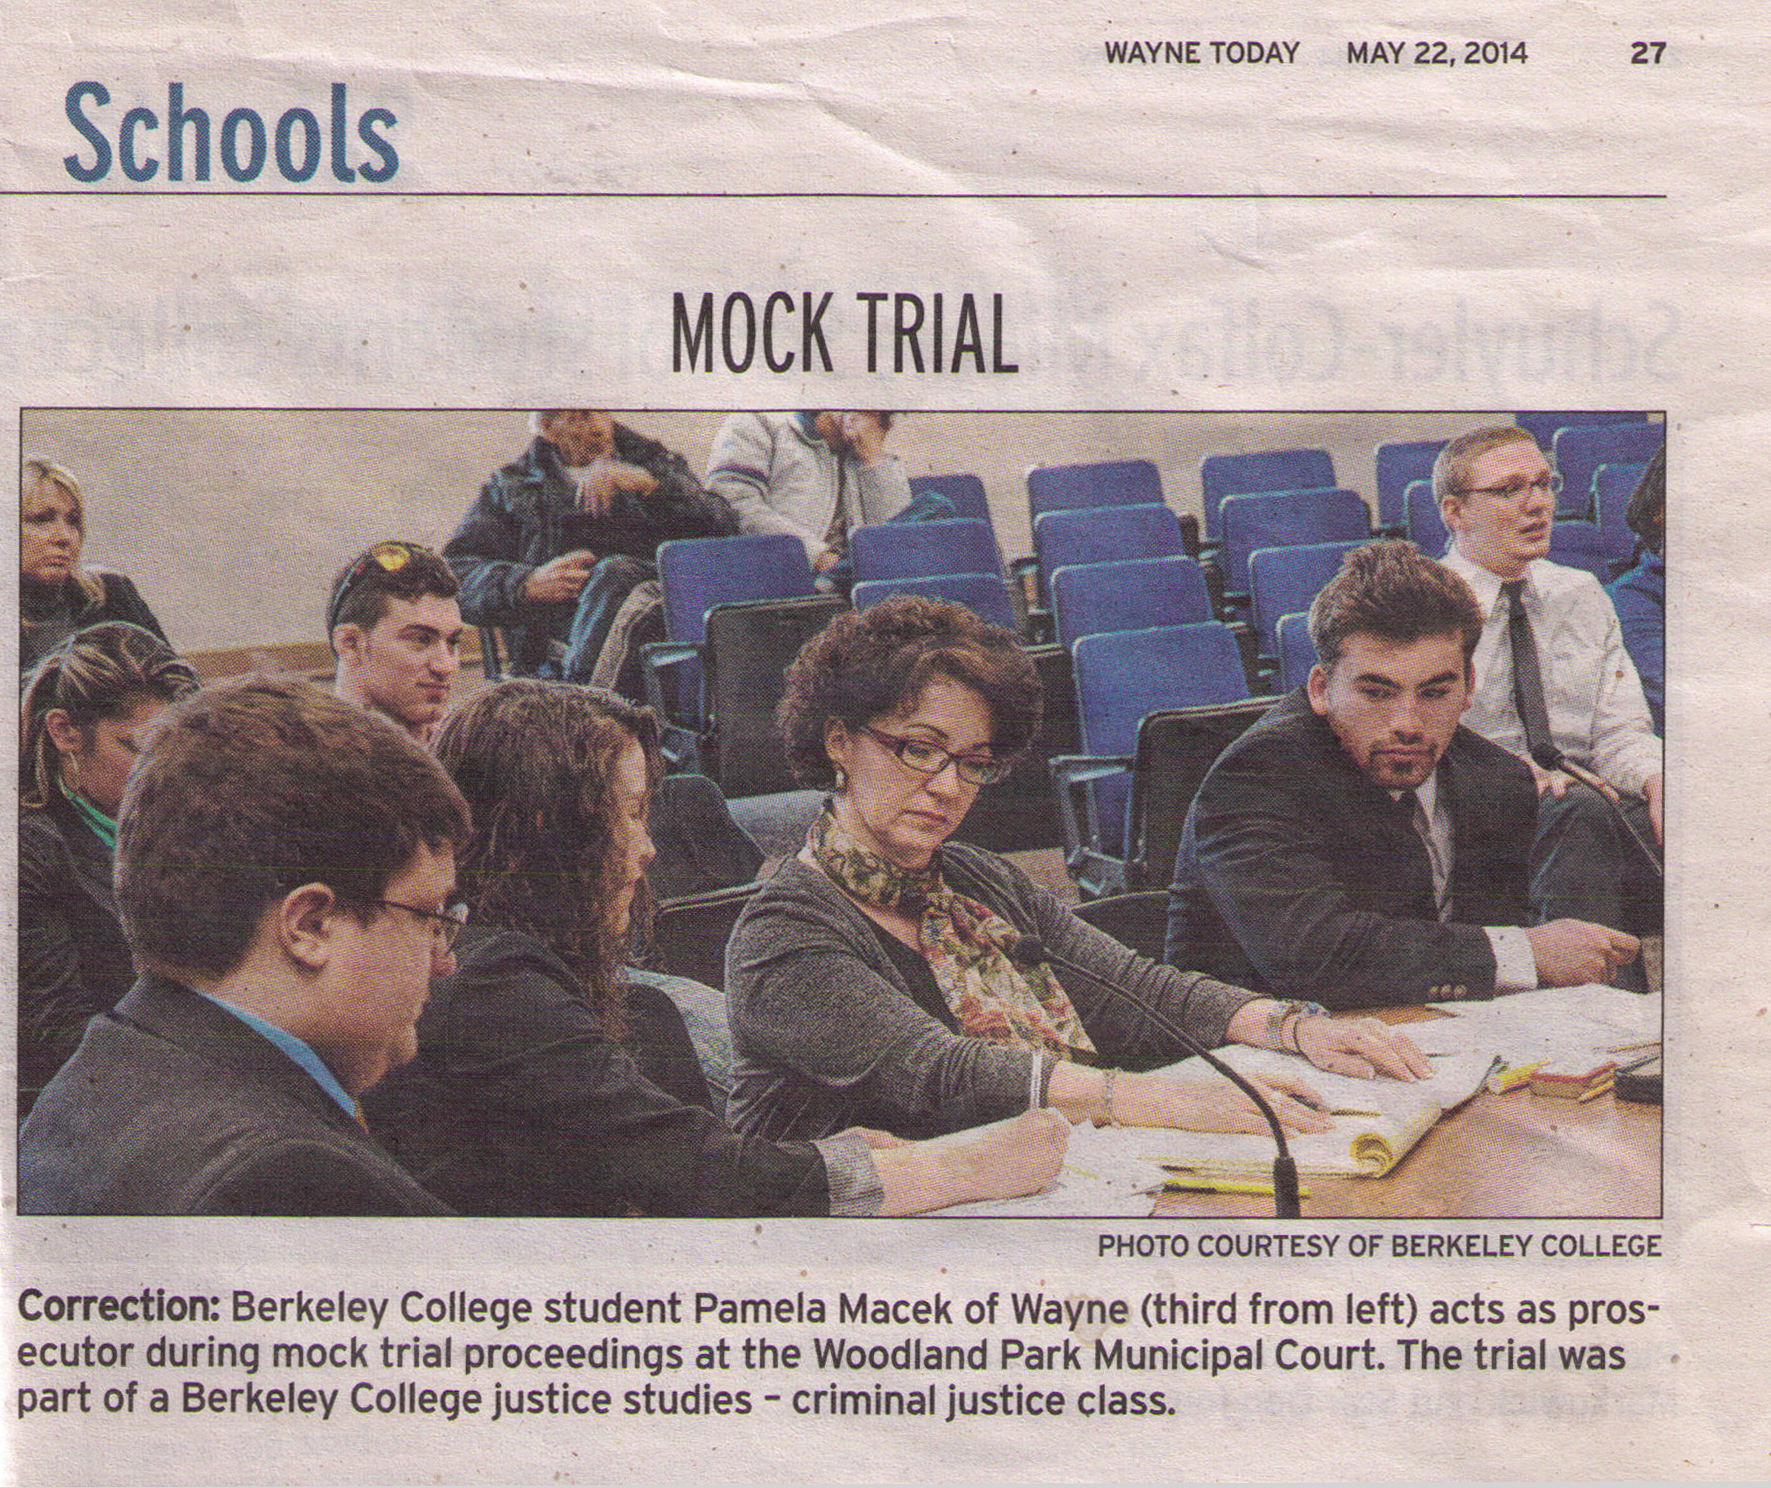 Pamela Macek of Wayne acts as prosecutor during a Berkeley College mock trial